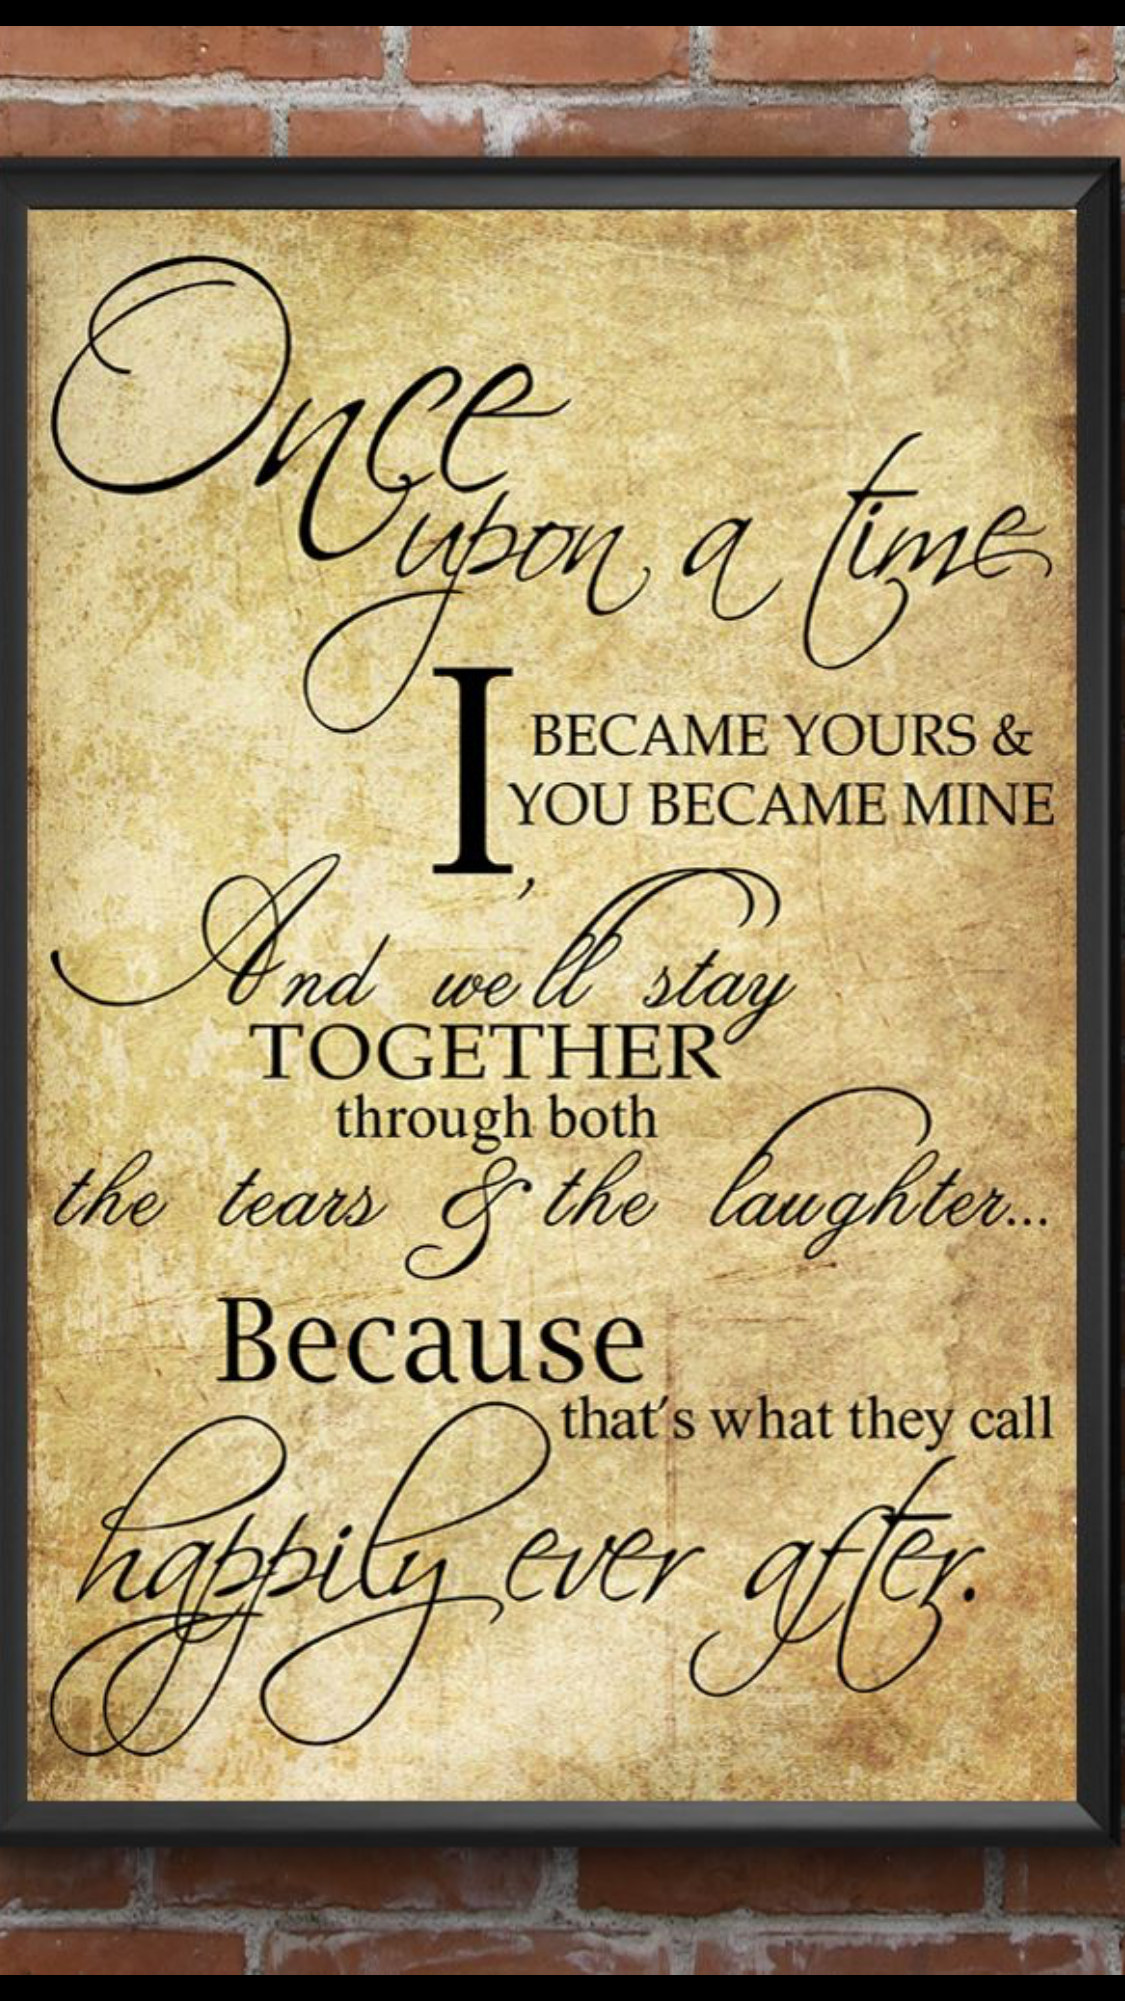 7 Year Anniversary Quotes : anniversary, quotes, Насиба, Насруллаева, Quotes,, Prayers, Messages, Inspirational, Anniversary, Quotes